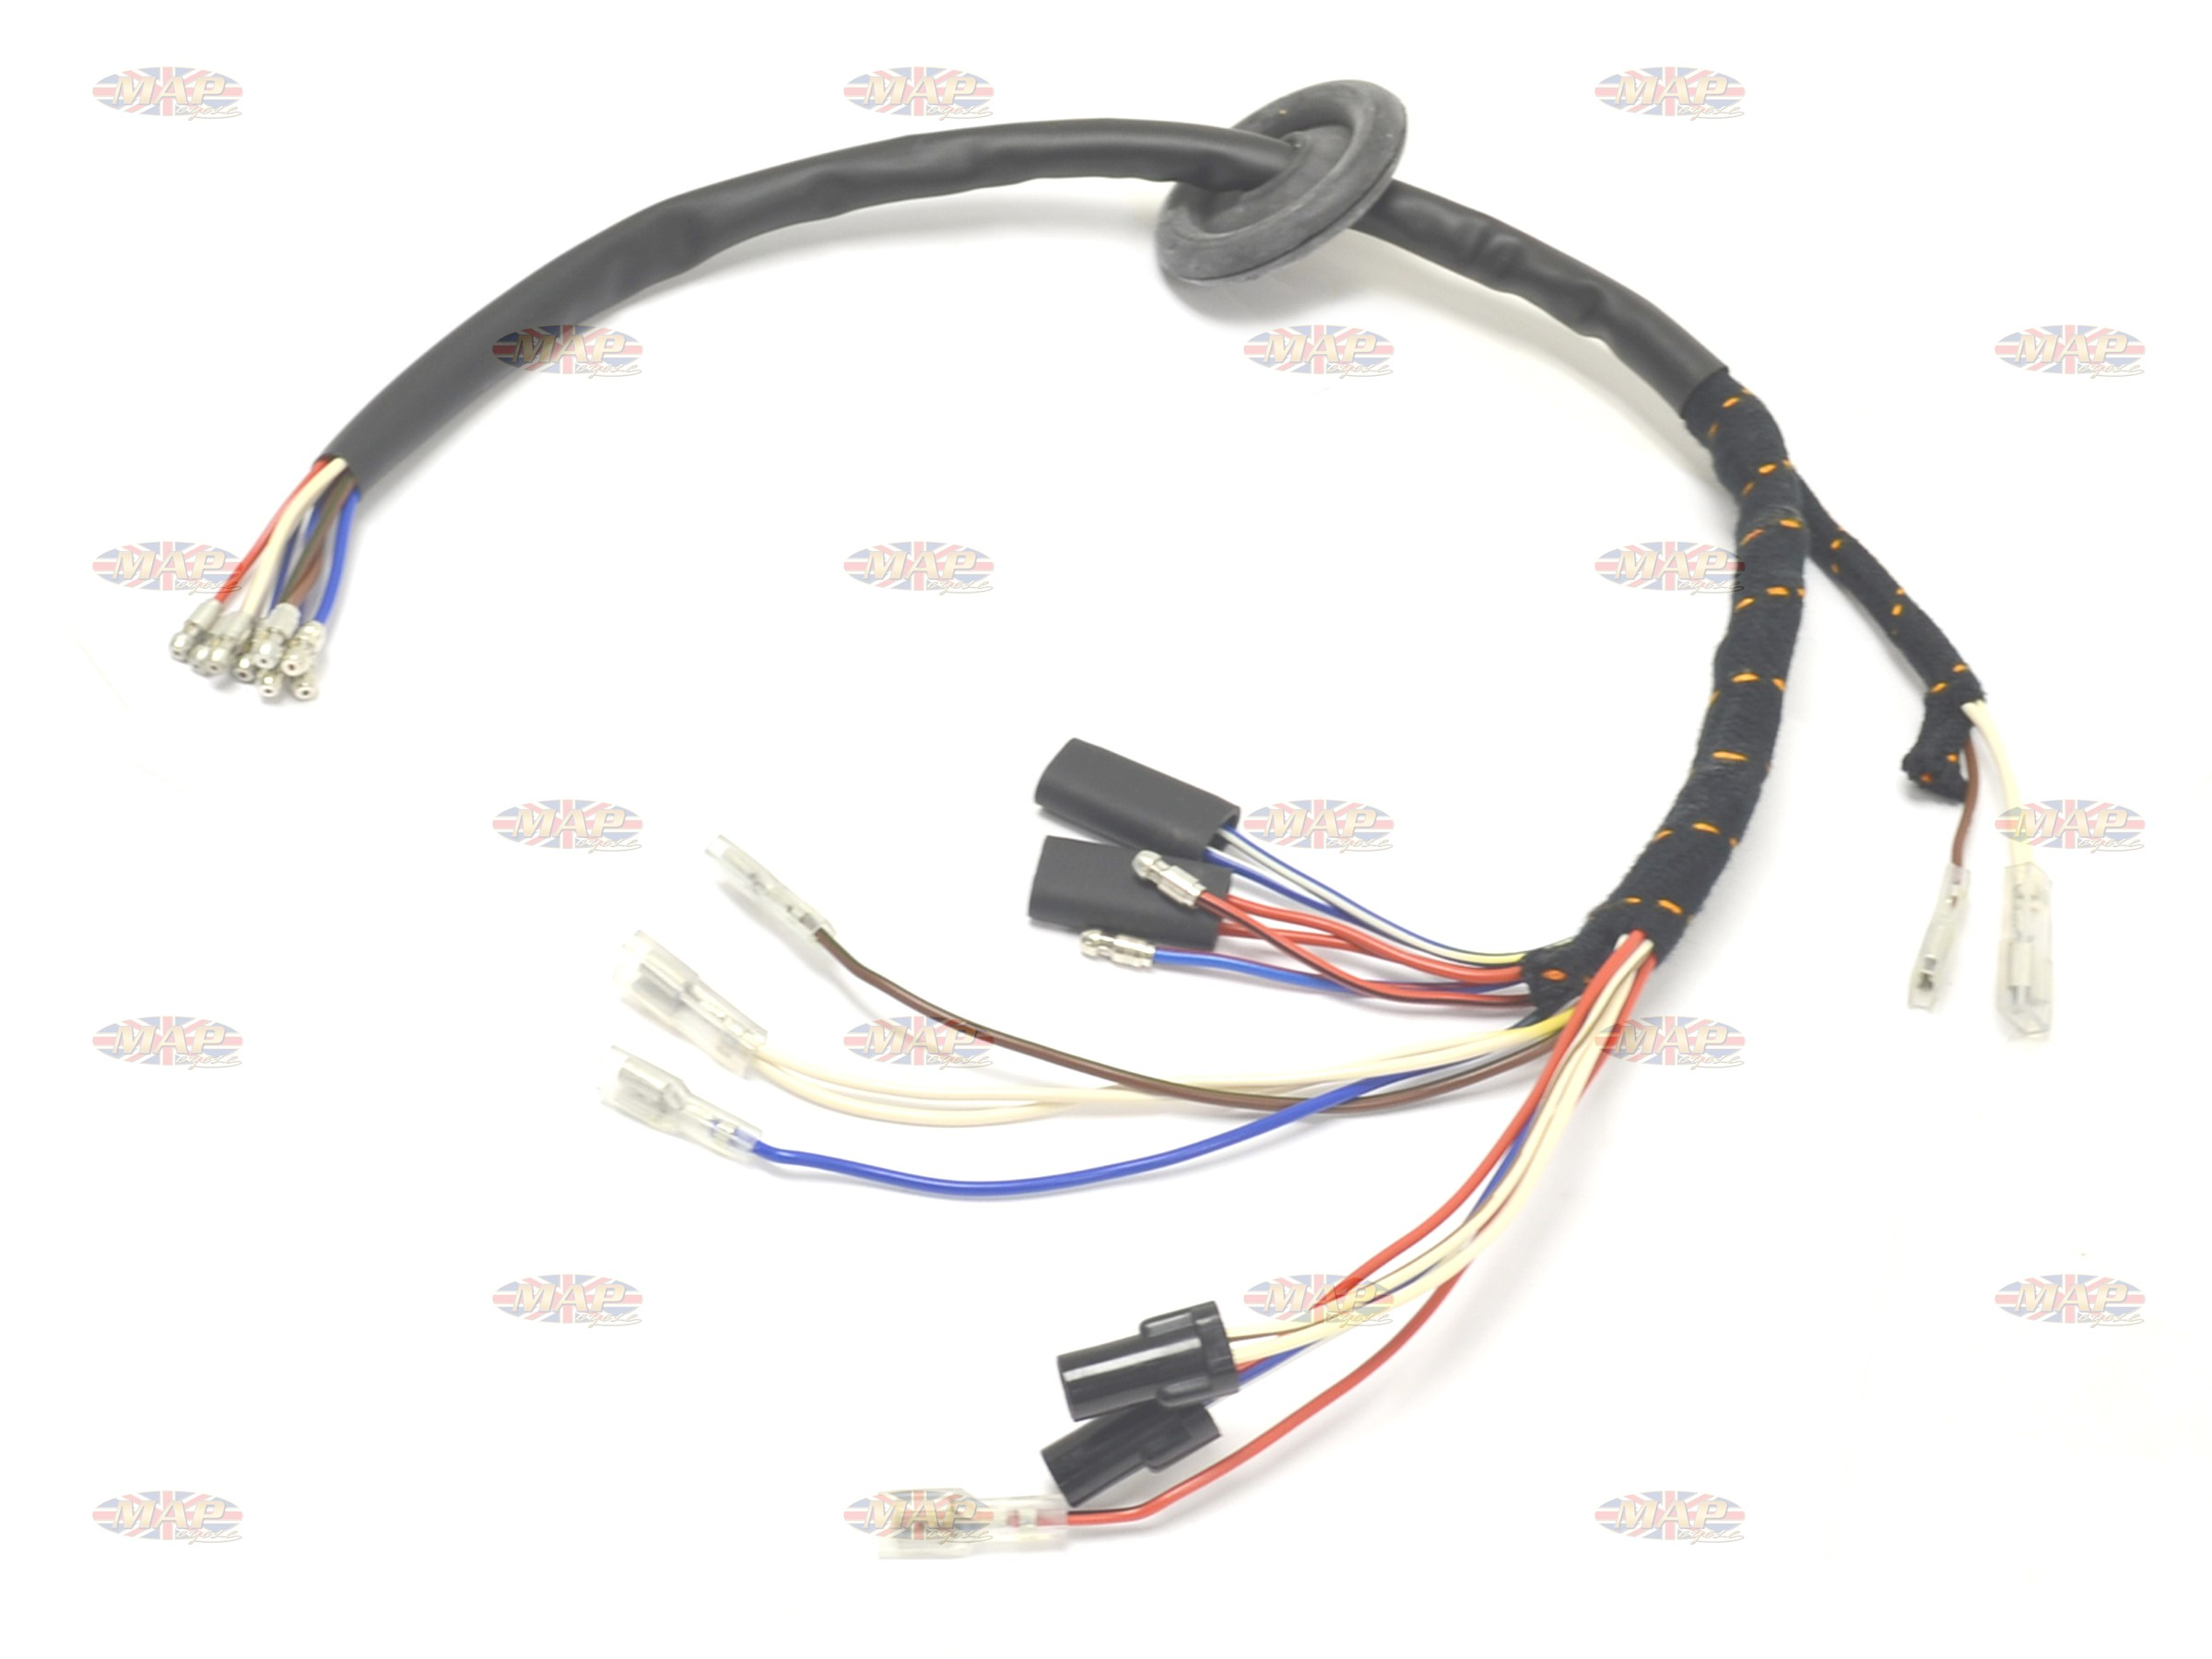 Auto Wiring Harness Connectors Solutions For Power Wheels Hurricane Data Diagrams